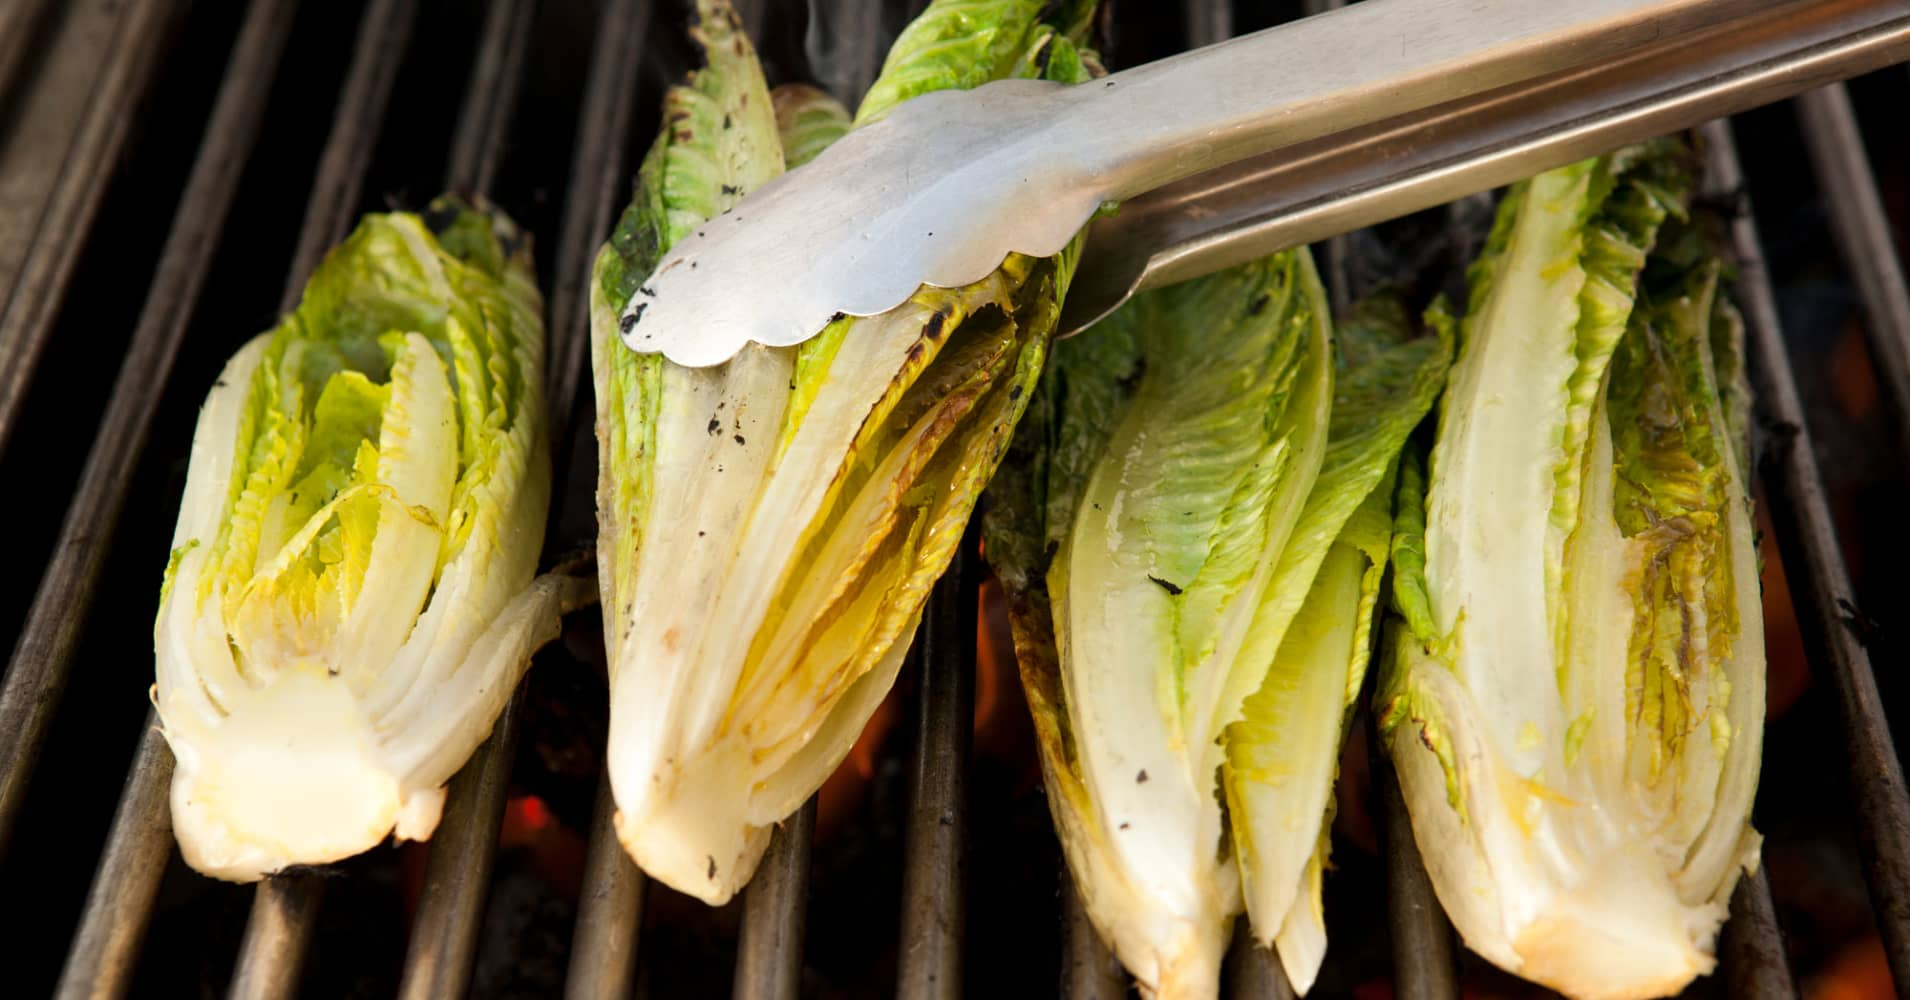 E. coli outbreak linked to romaine lettuce frustrates produce industry